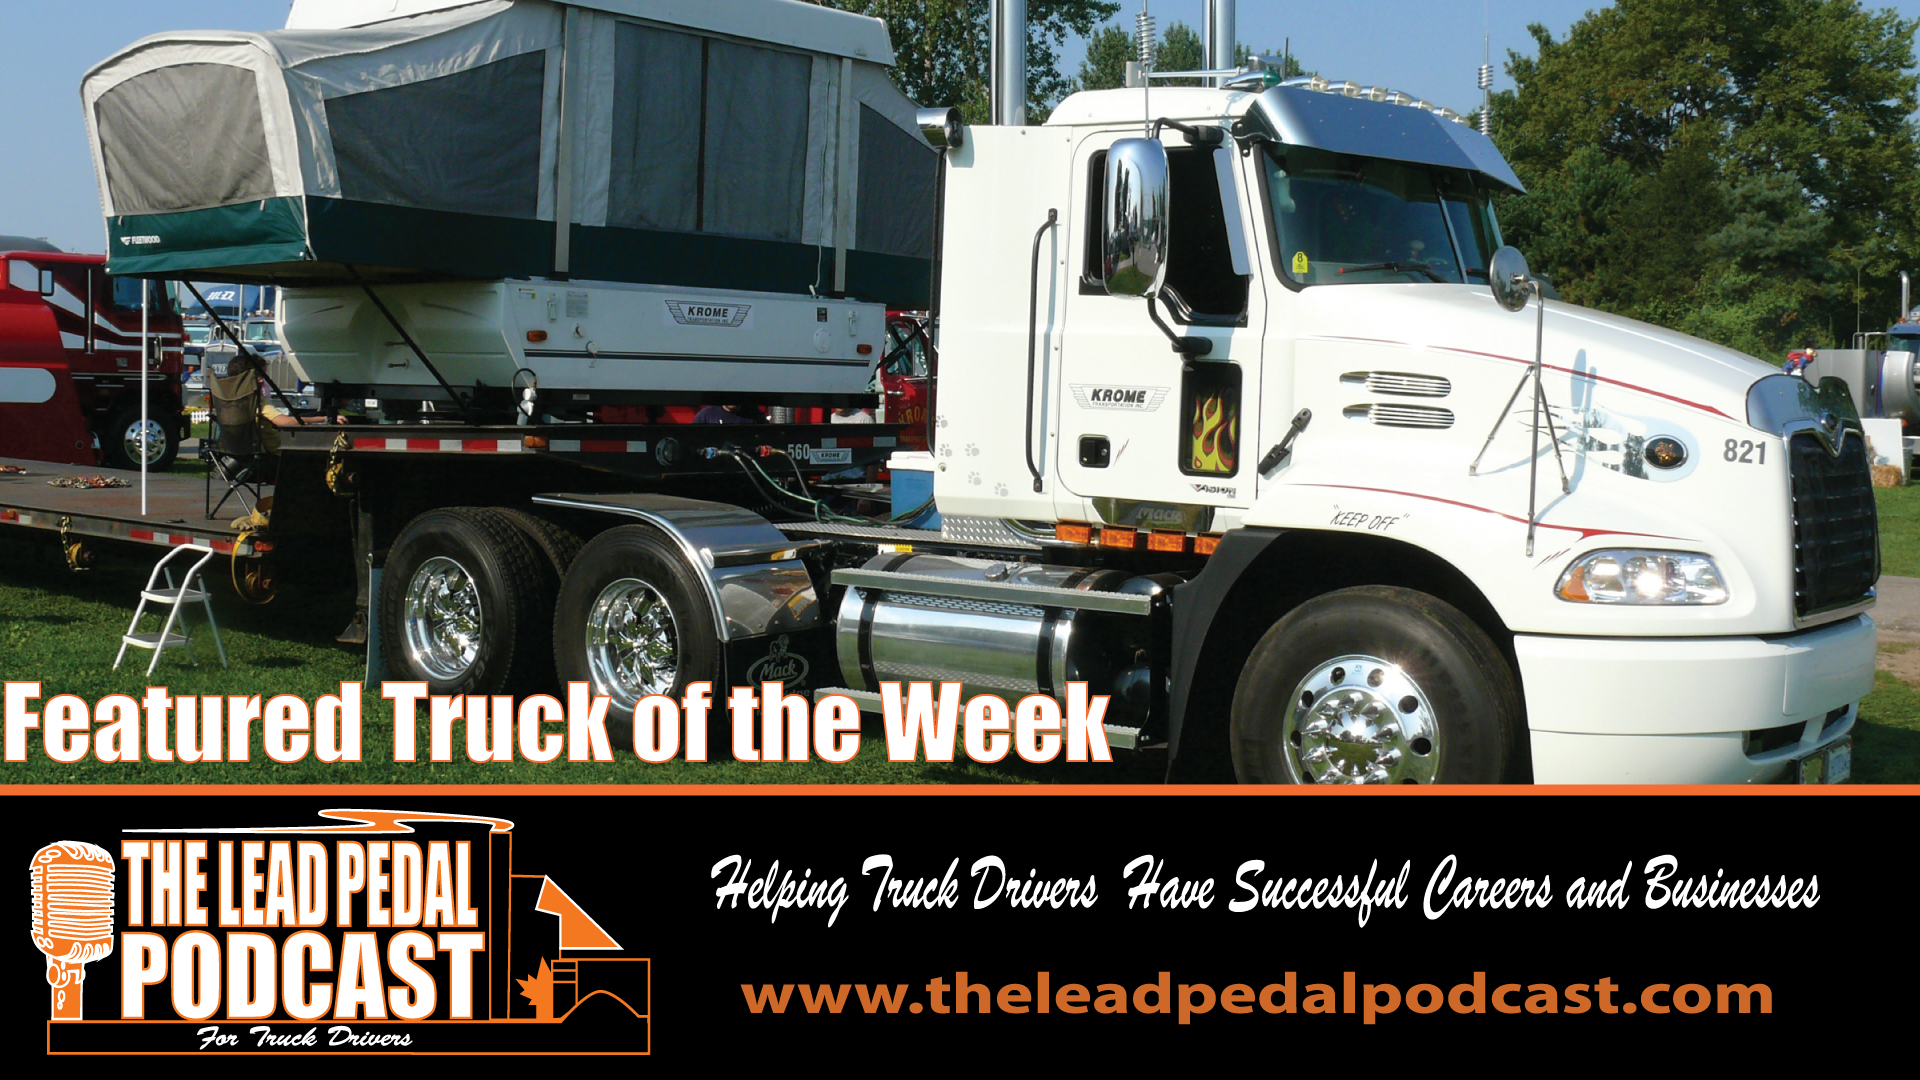 LP639 Featured Truck of the Week - Krome Mack Vision